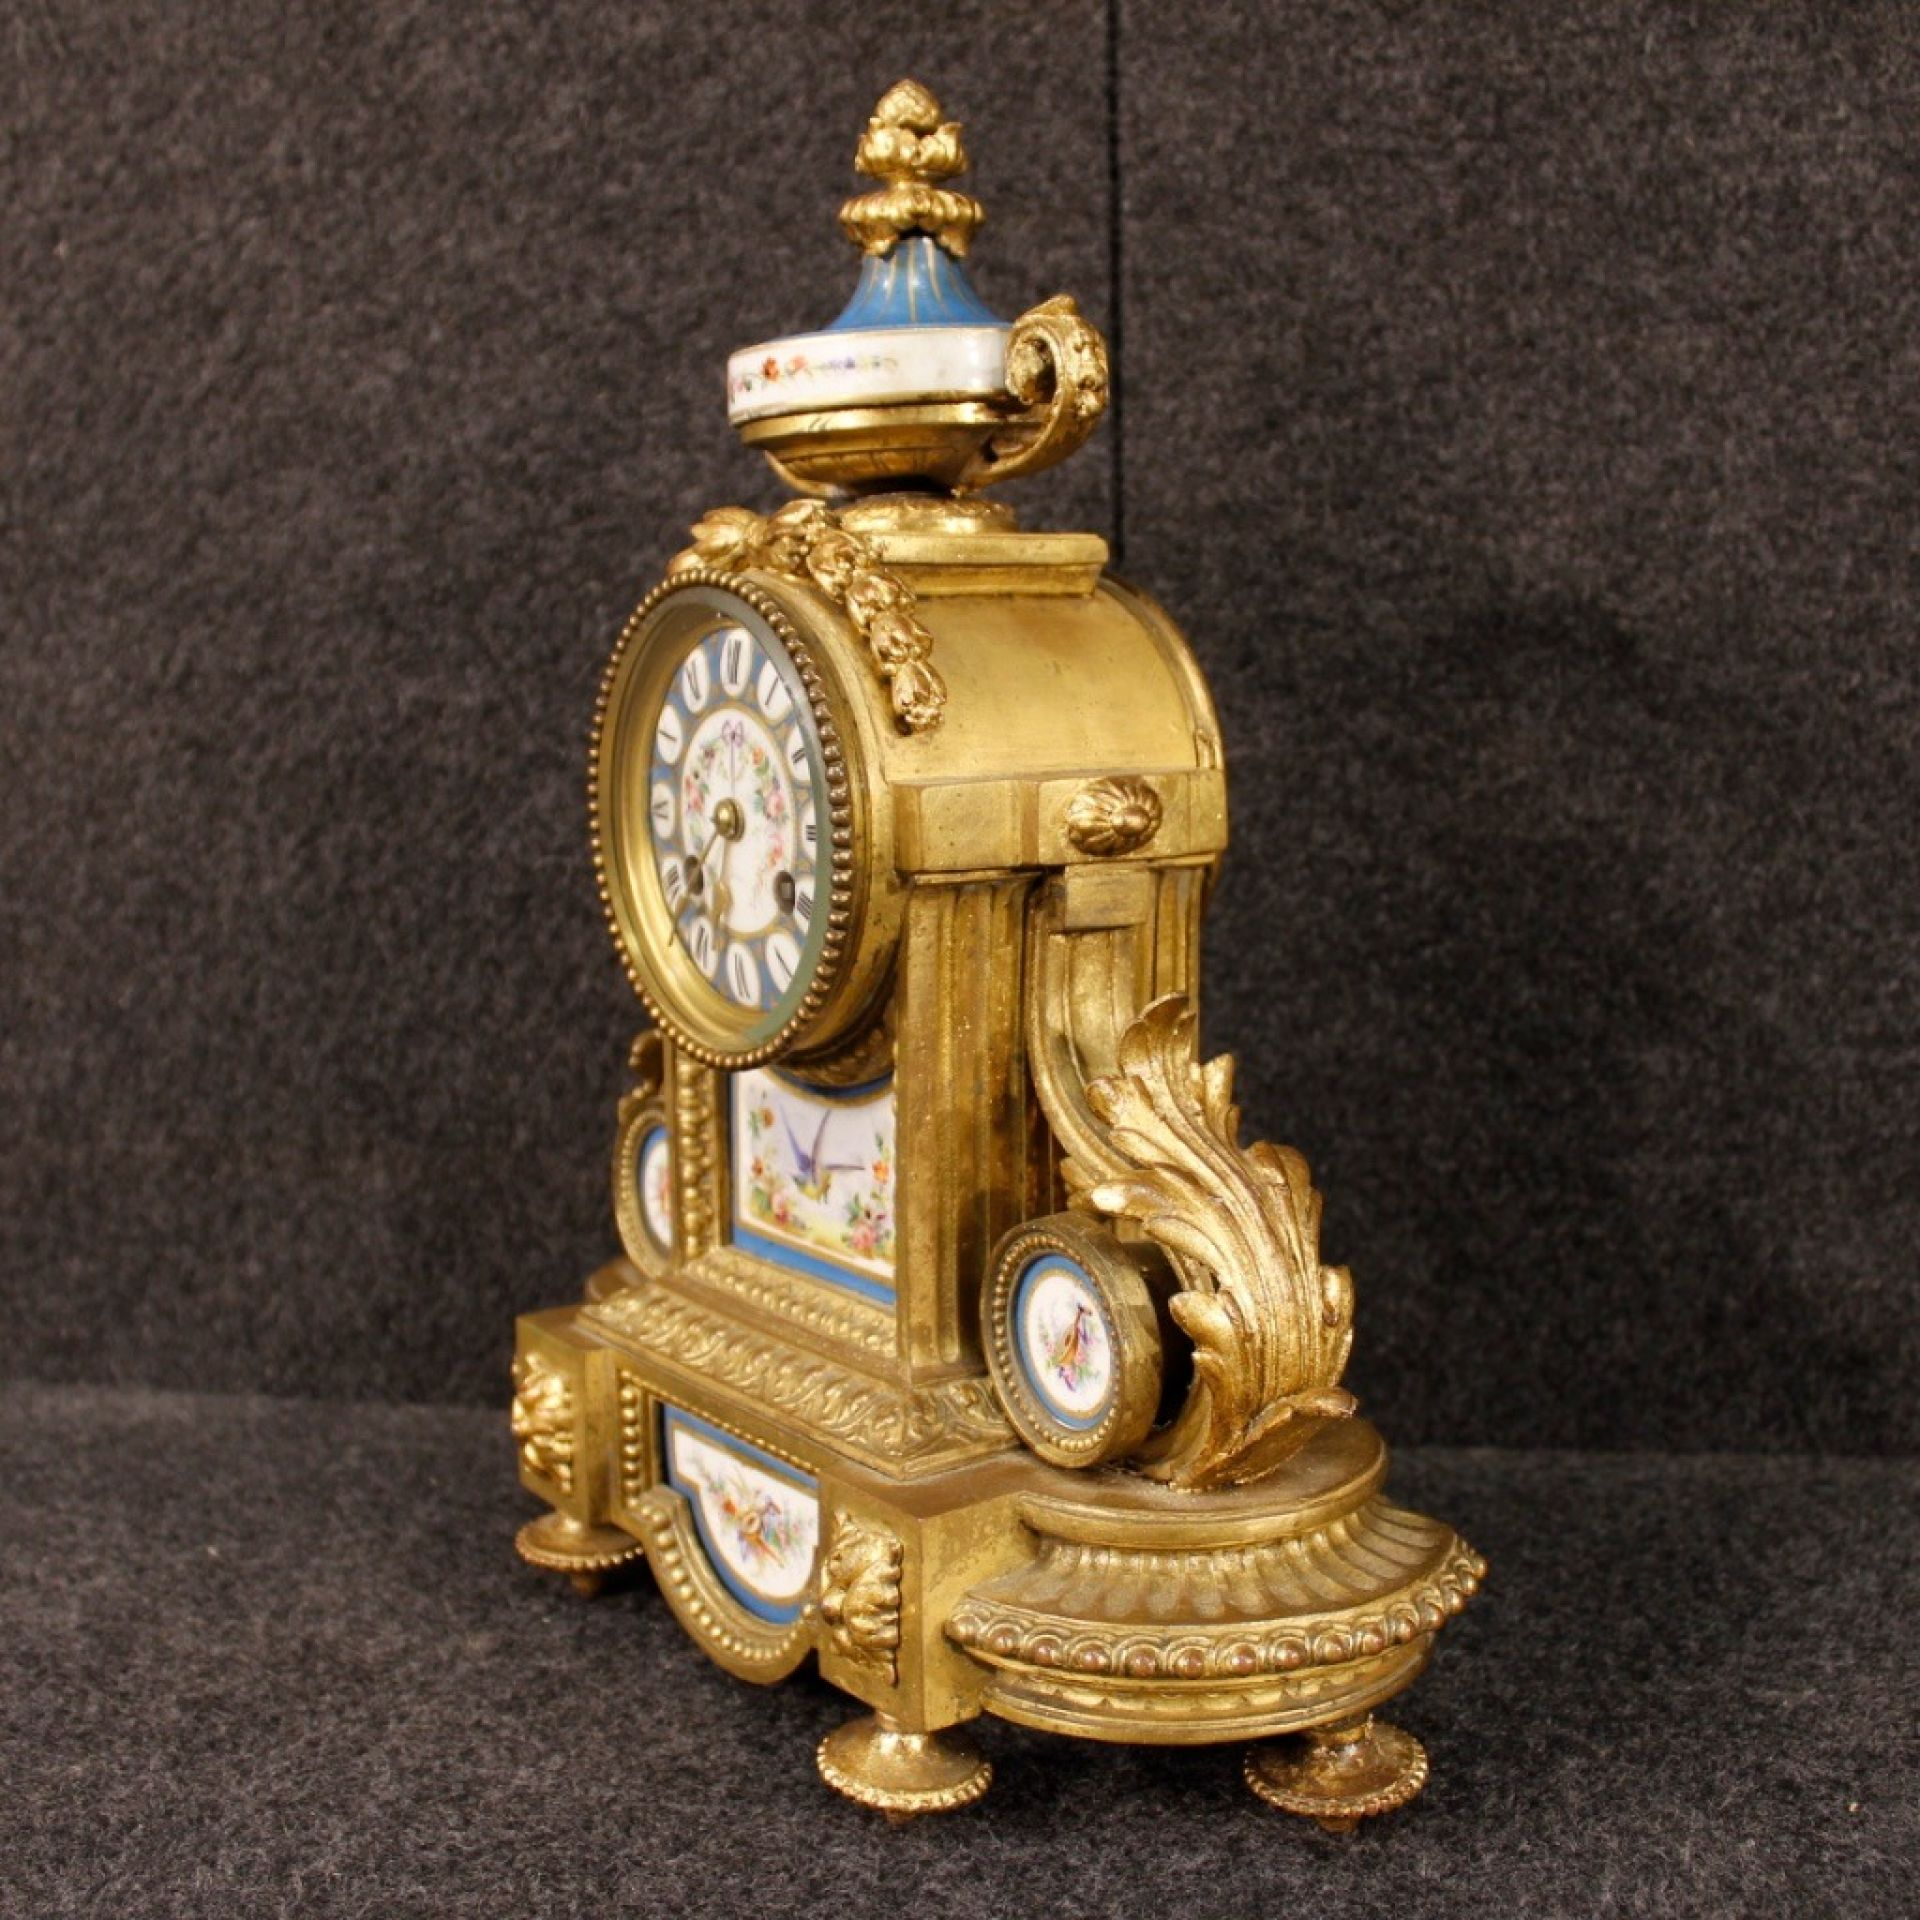 20th Century Gilded Bronze And Brass With Painted Ceramic French Clock, 1950